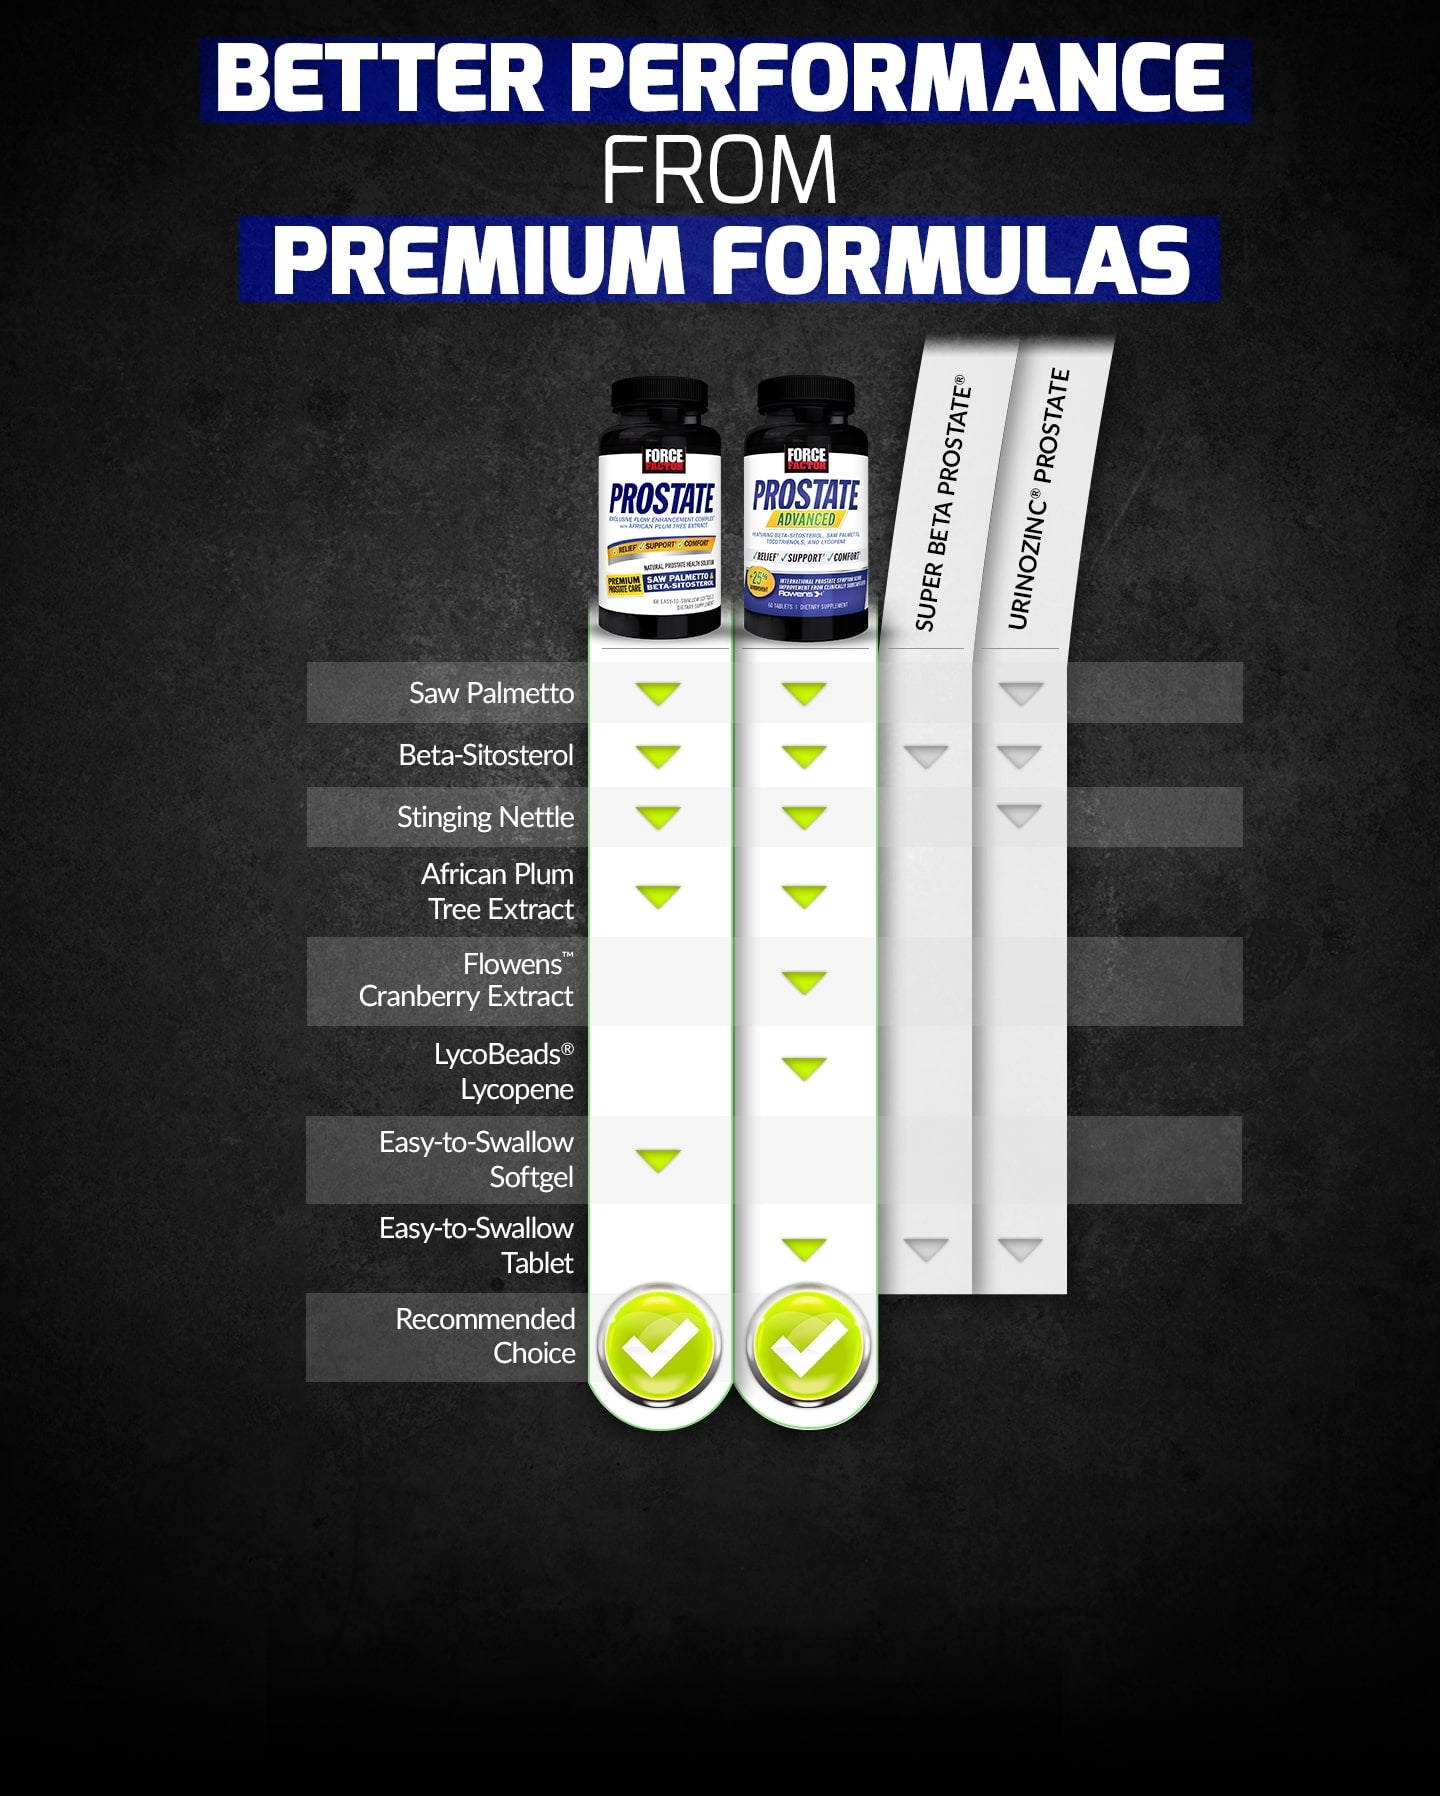 BETTER PERFORMANCE FROM PREMIUM FORMULAS